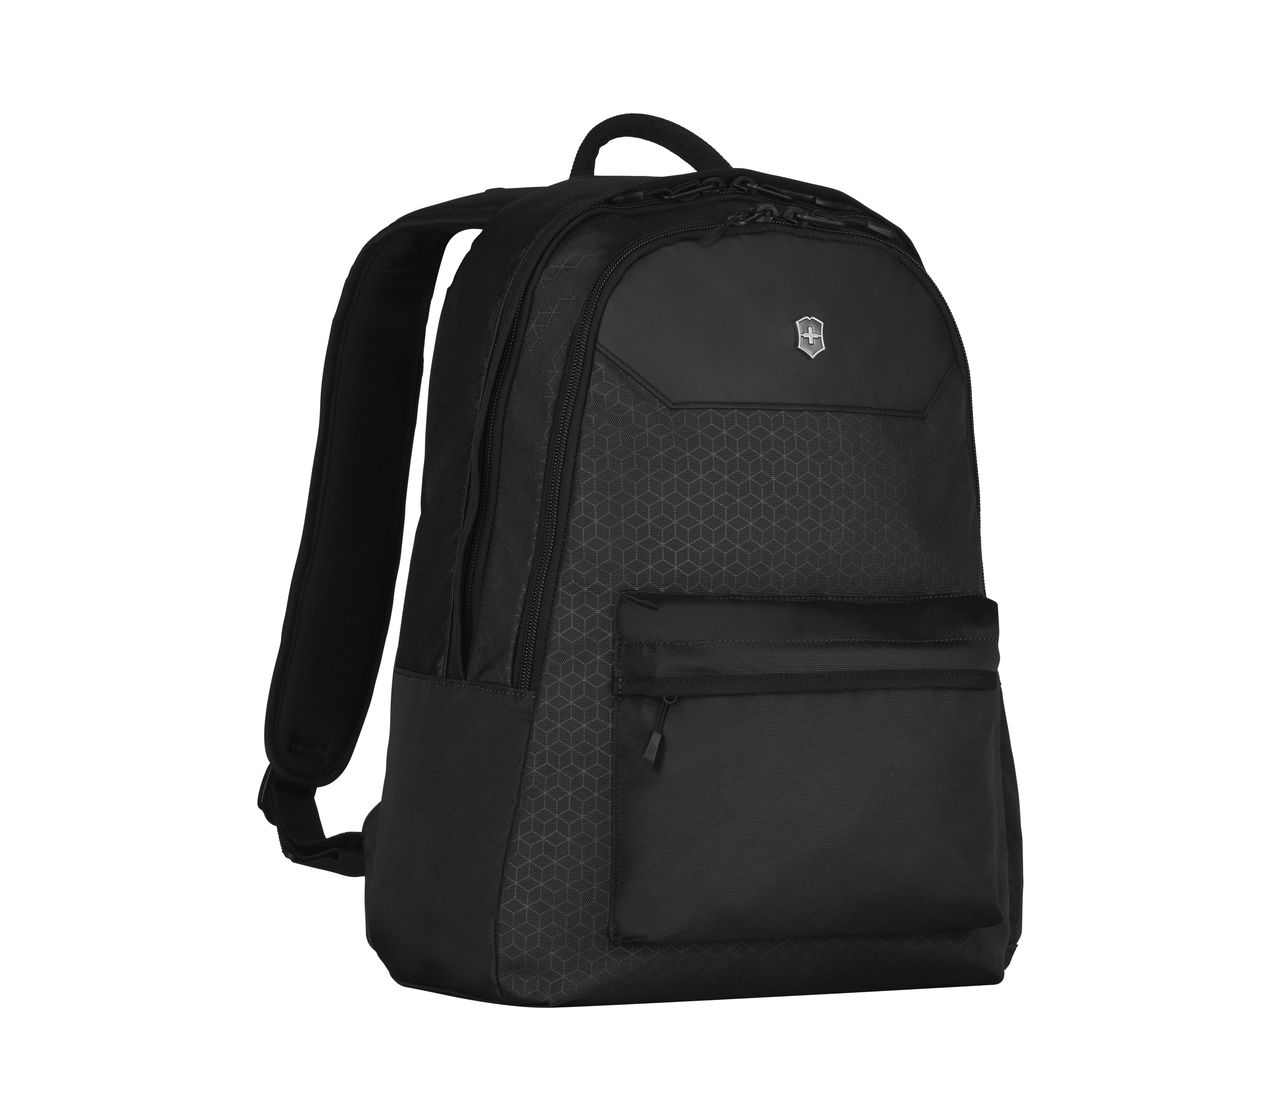 Victorinox Altmont Original Standard Backpack In Black